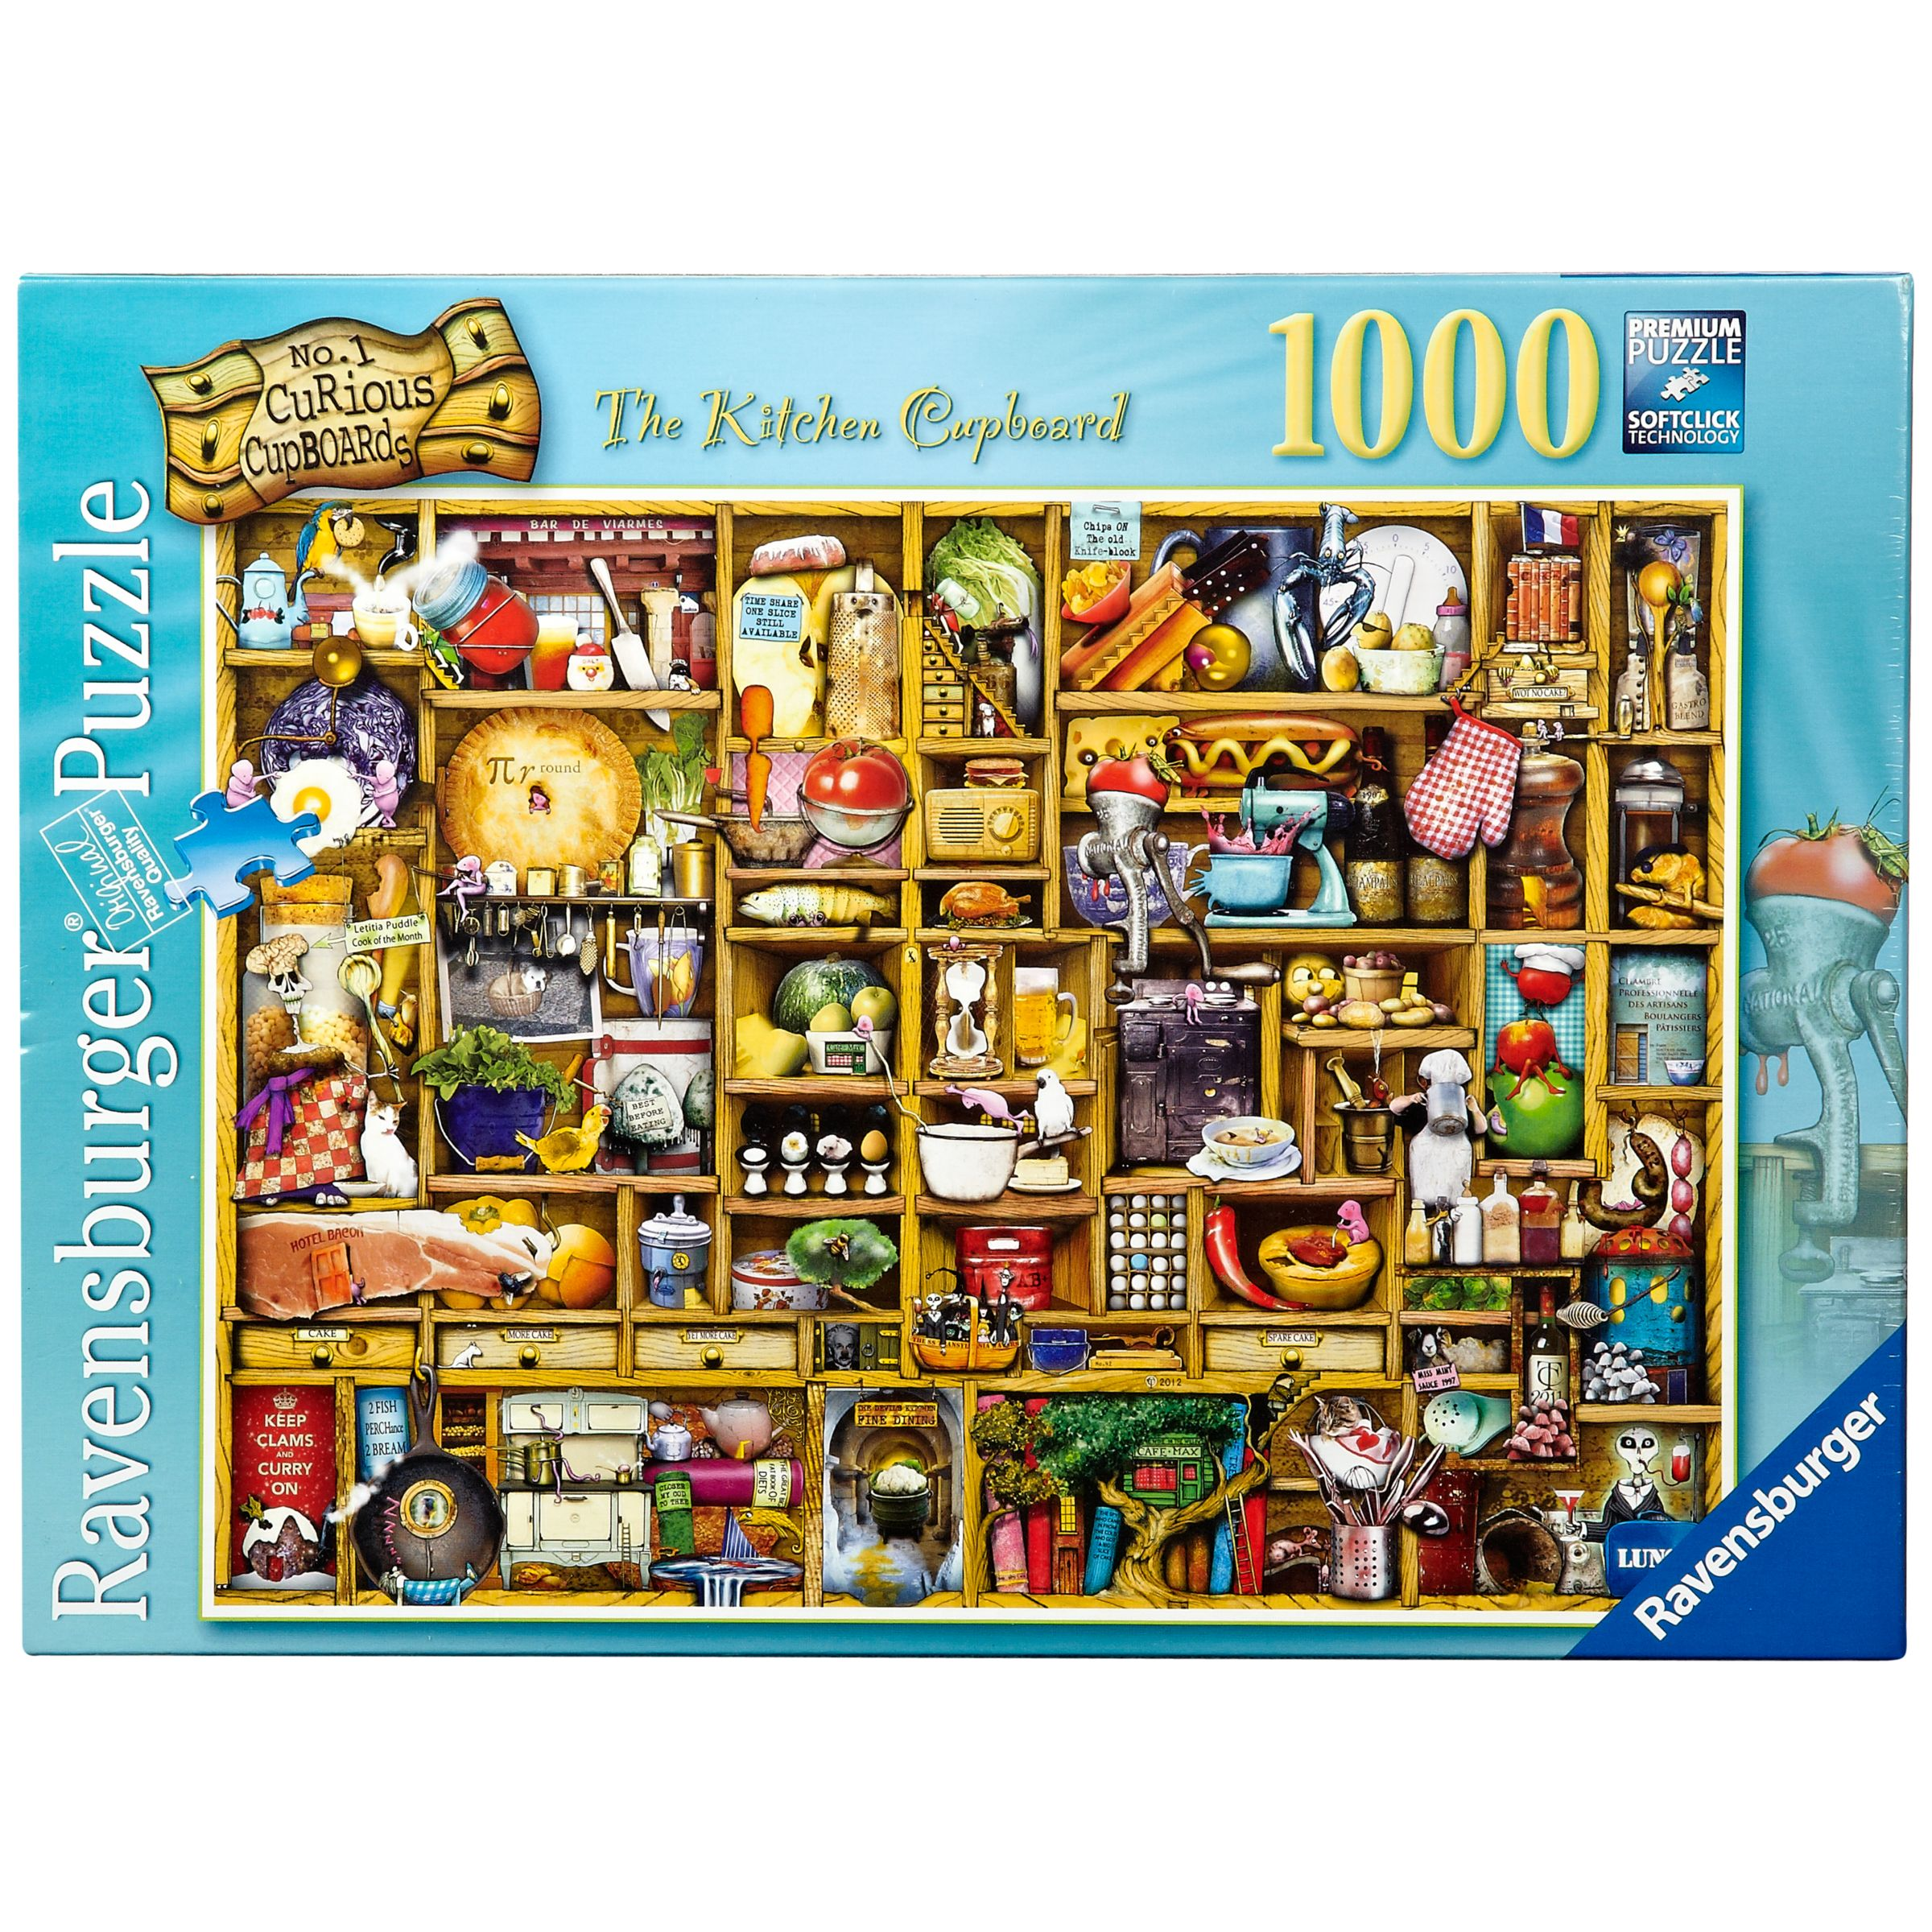 Ravensburger Curious Kitchen Cupboard 1000 Piece Puzzle